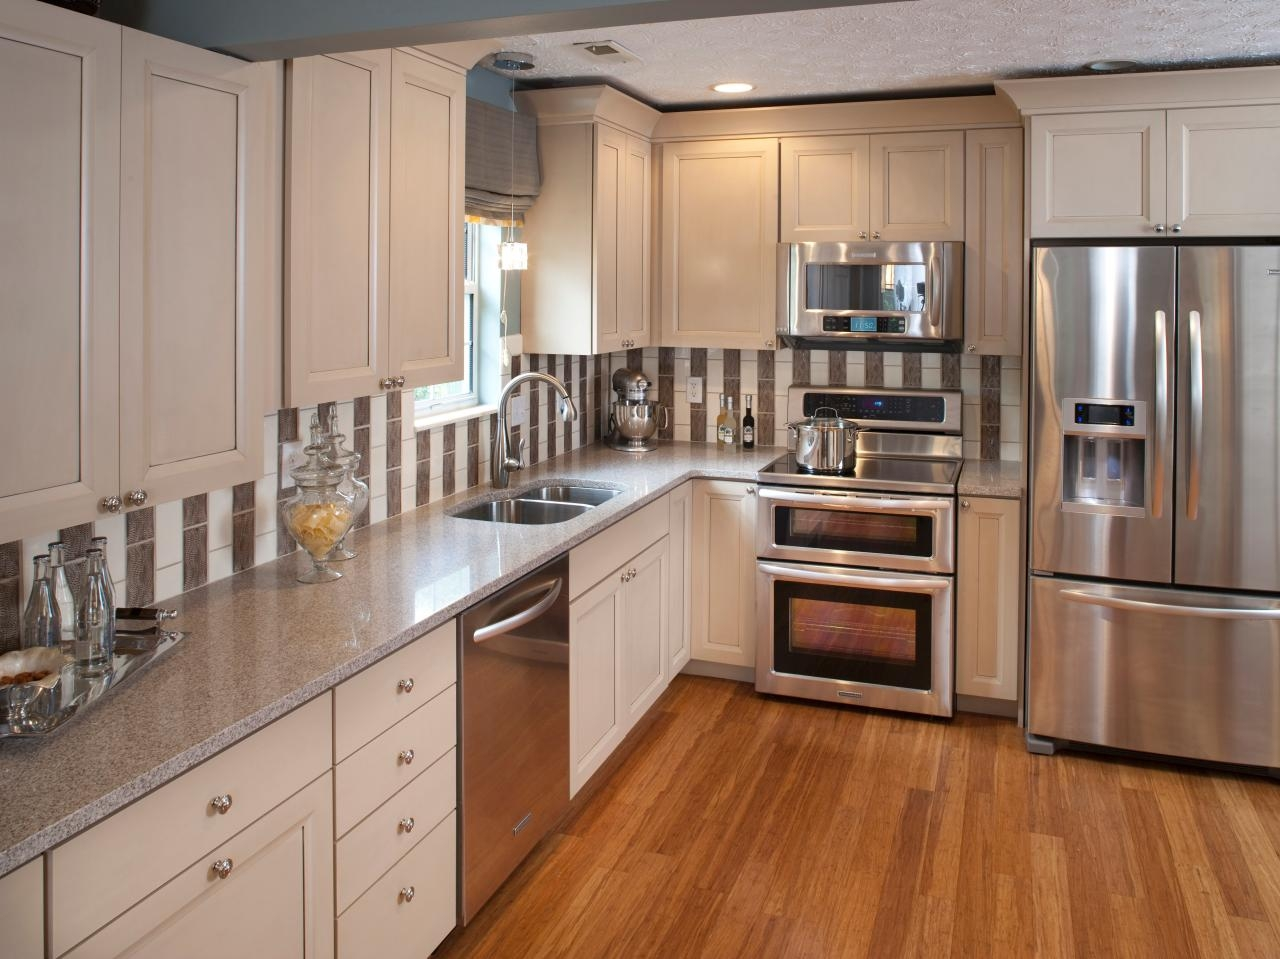 Light Kitchen Cabinets With Stainless Steel Appliances